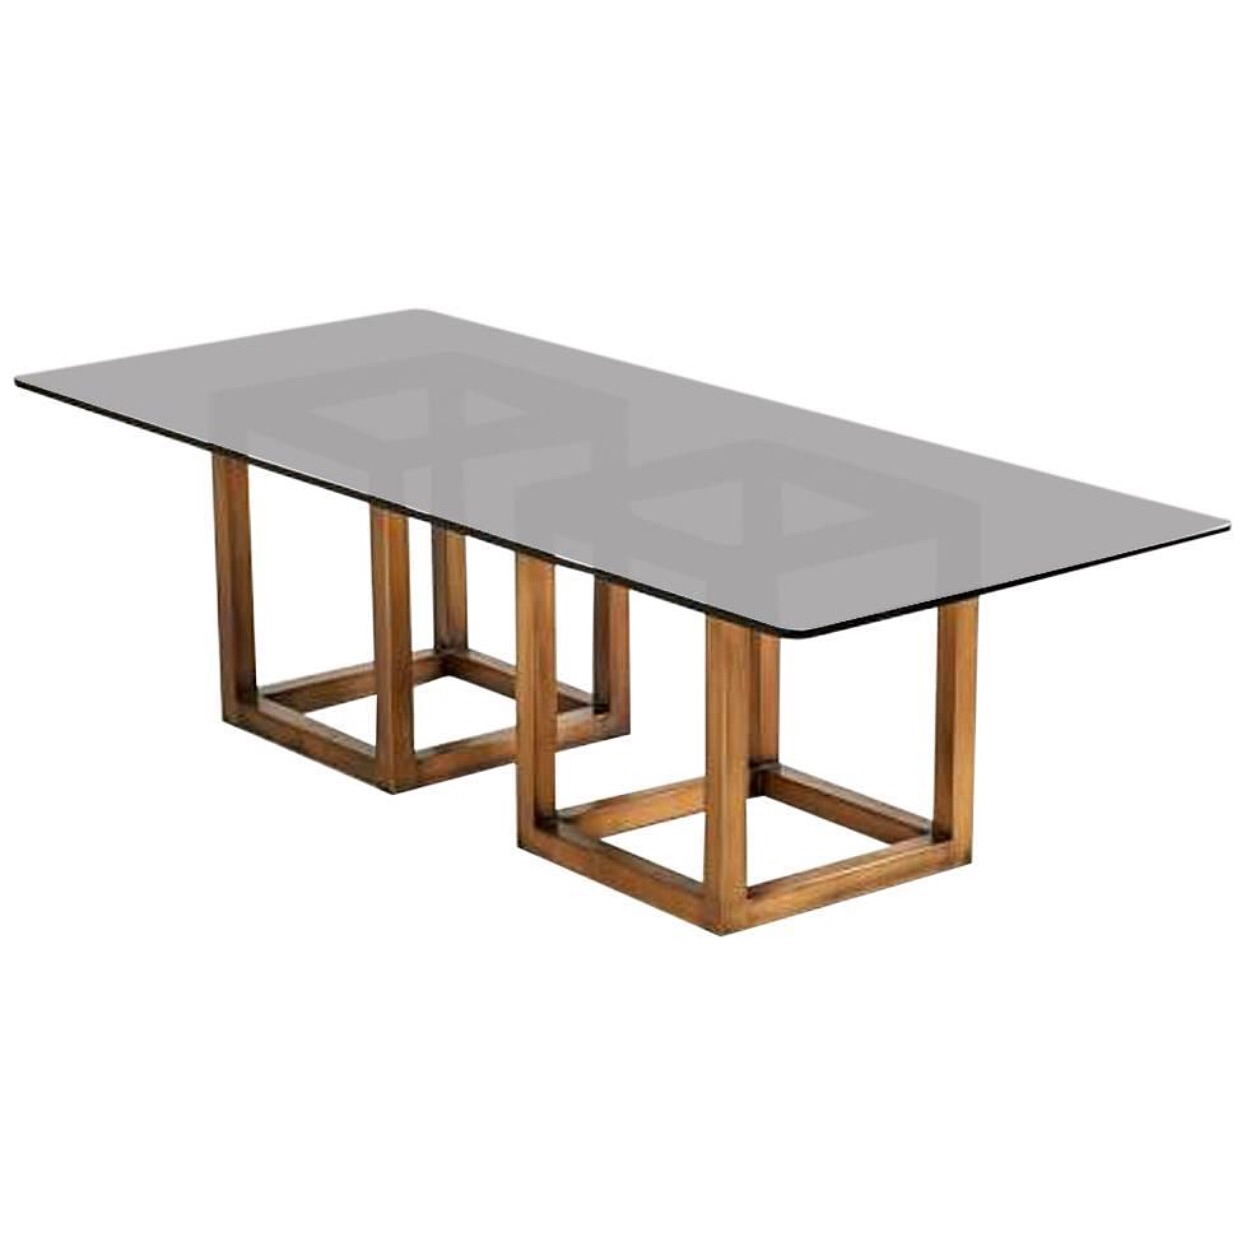 Milo Baughman Double Bronze Base Dining Table Chairish : ae8352d3 01a0 407d a5e2 6f86fcf5b168aspectfitampwidth640ampheight640 from www.chairish.com size 640 x 640 jpeg 21kB